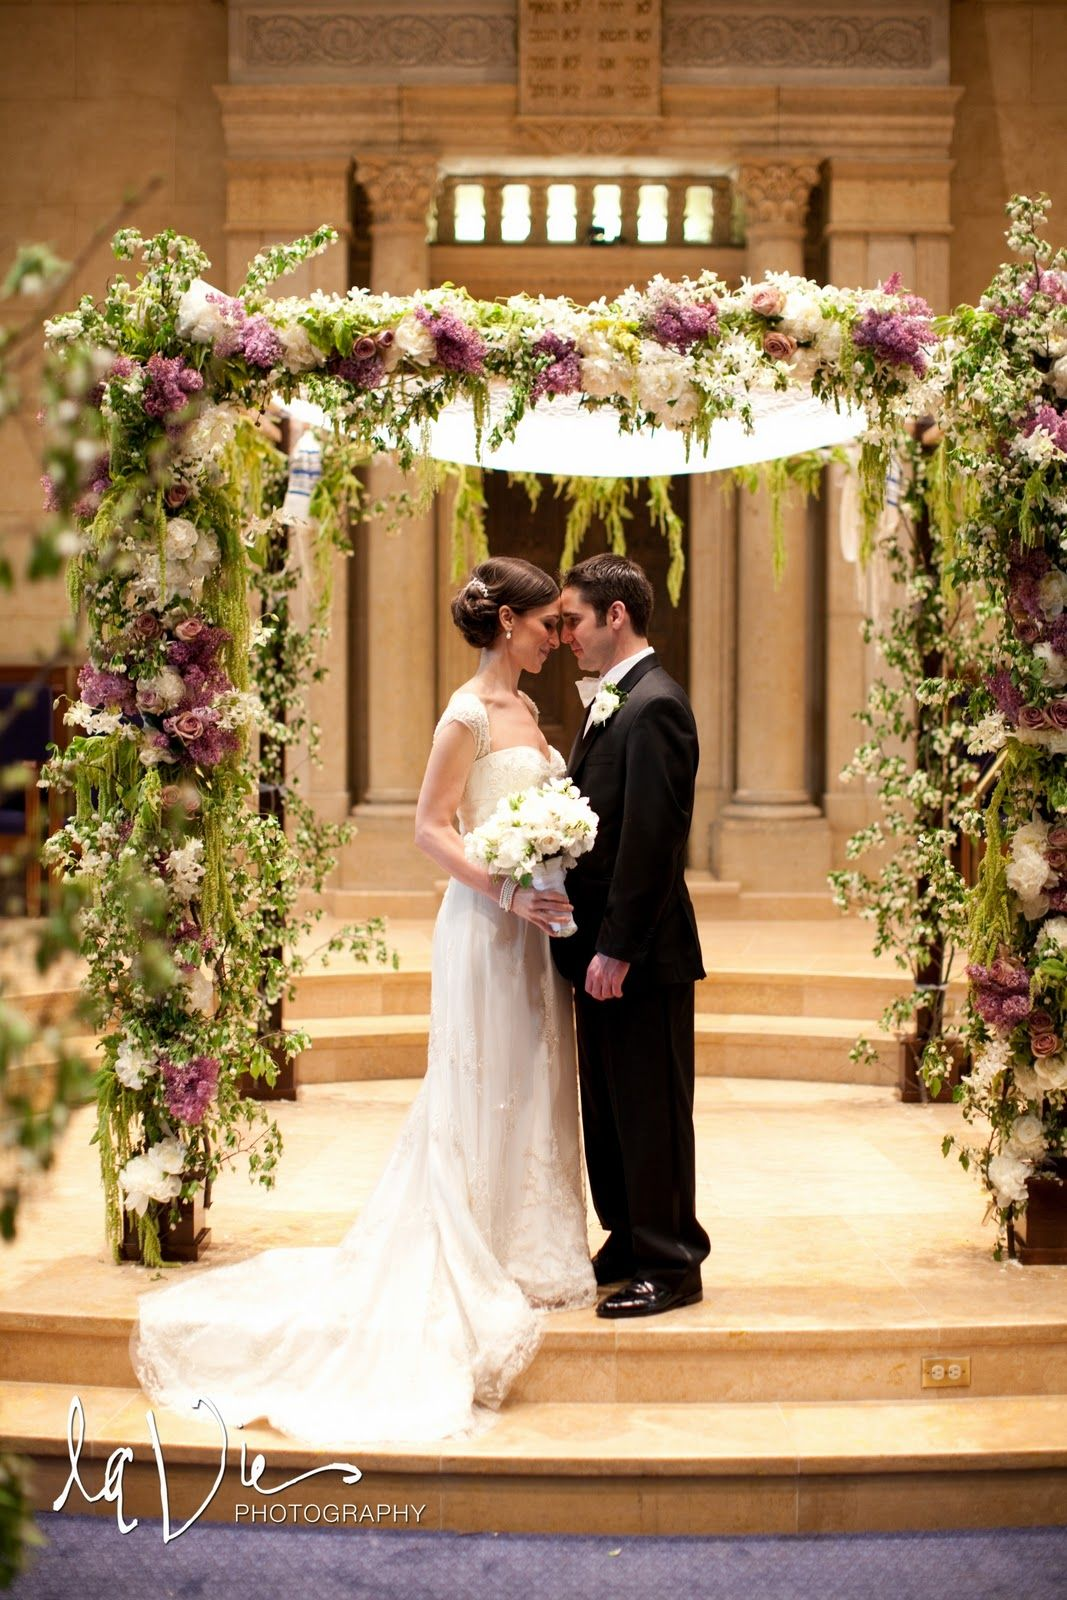 cocoa & fig lilac wedding- The flowers might be a little expensive, unless you want to go with silk. But it'd be a nice way of bringing the outdoors in.